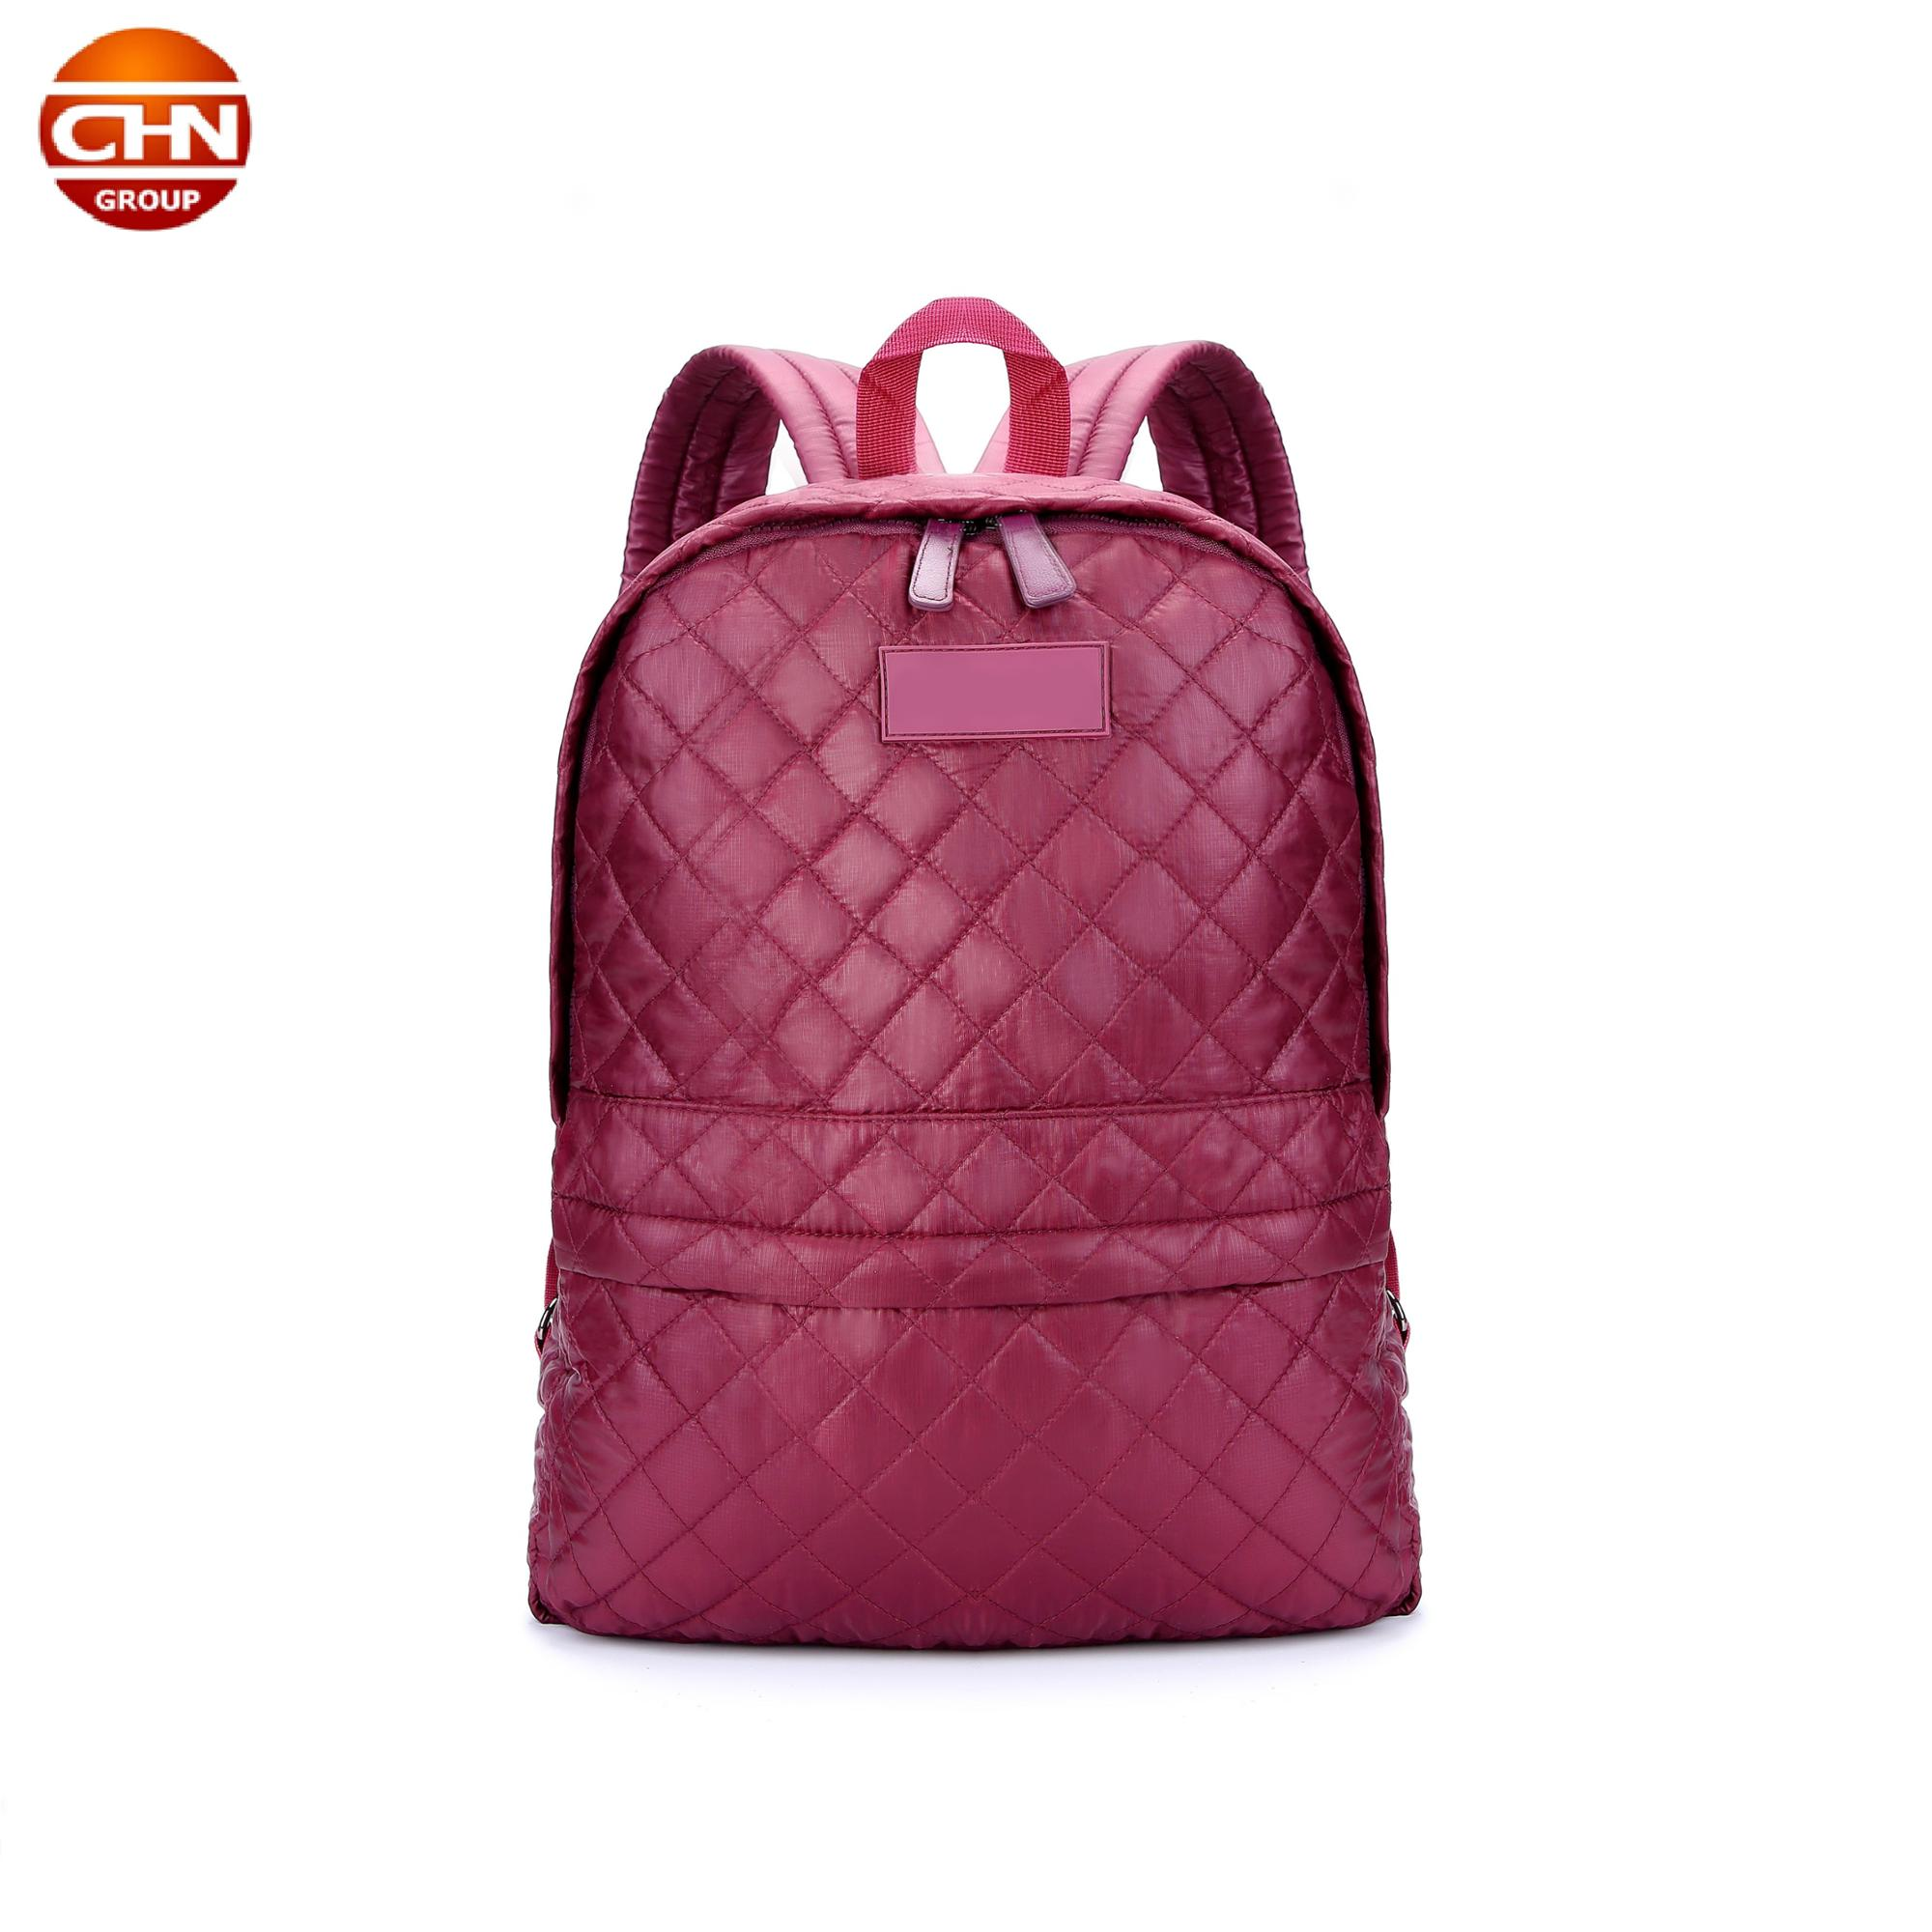 2018 Hot-selling High quality girls School bag lady backpack women backpack